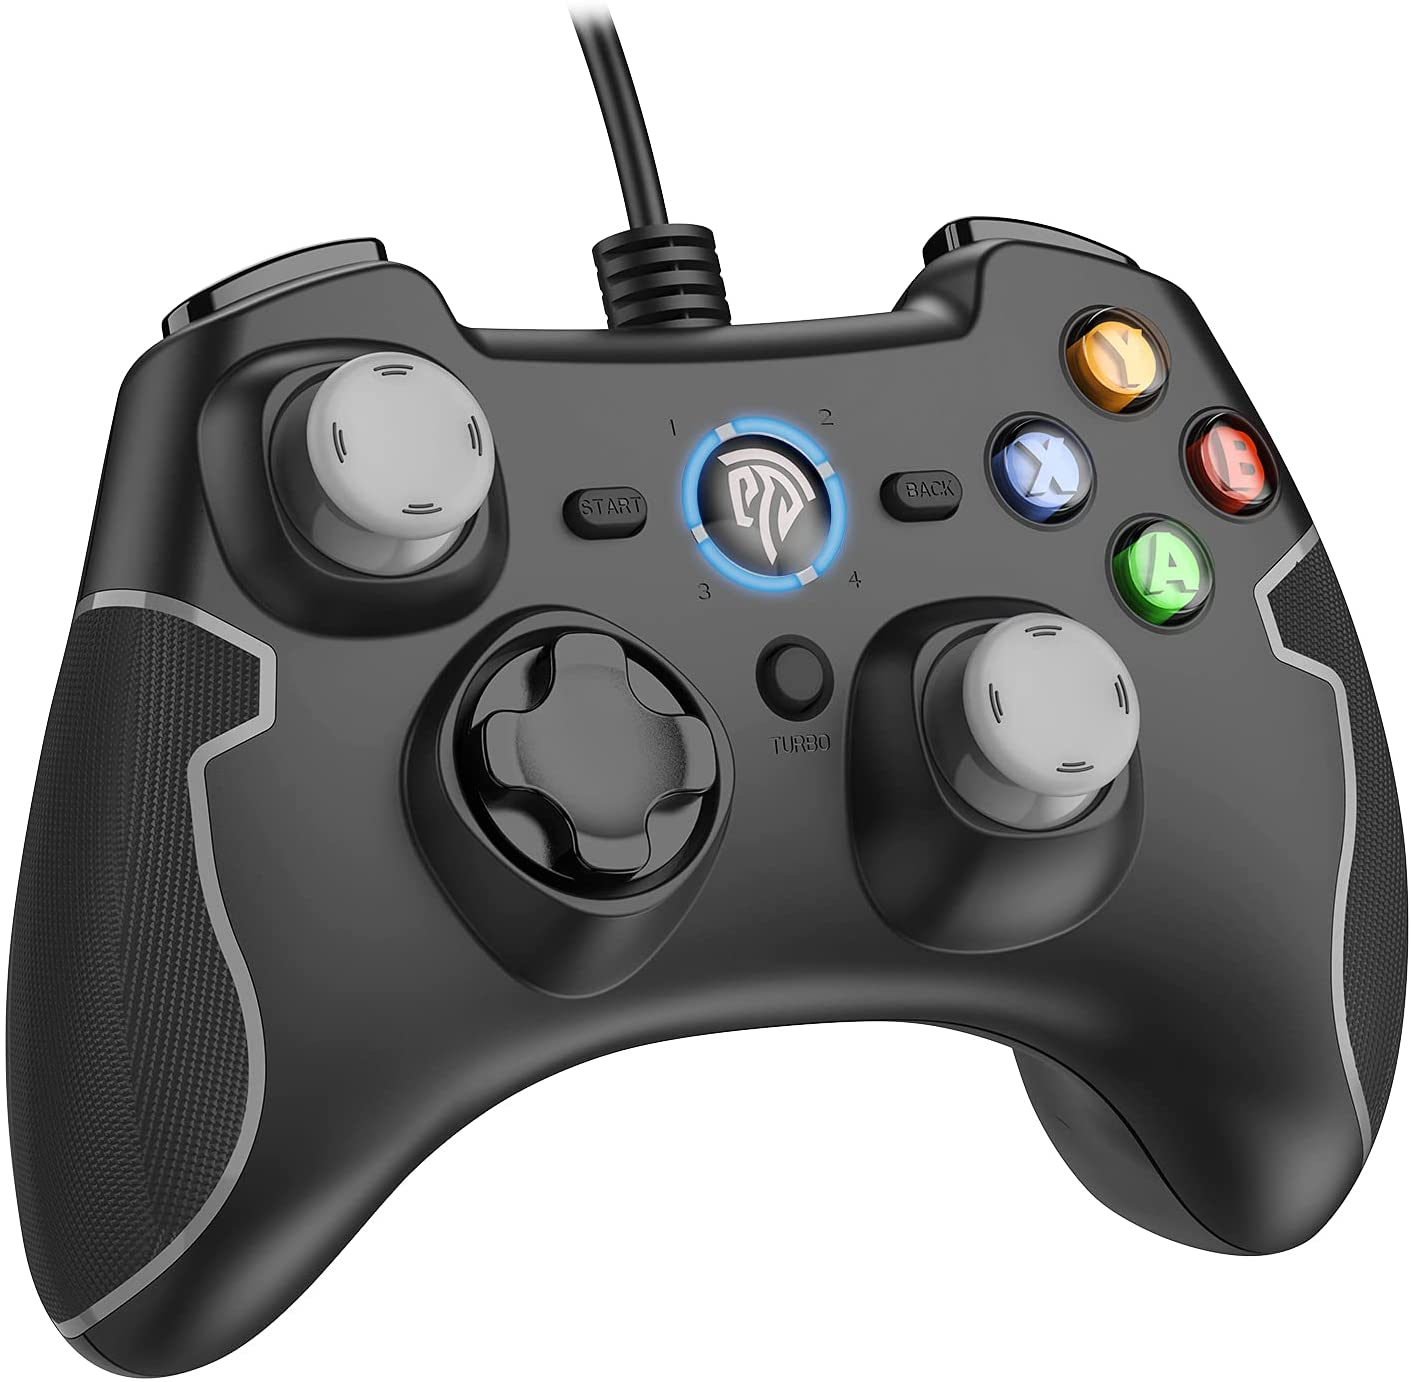 EasySMX Wired Gaming Controller, PC Game Controller Joystick with Dual-Vibration Turbo and Trigger Buttons for Windows/Android/ PS3/ TV Box